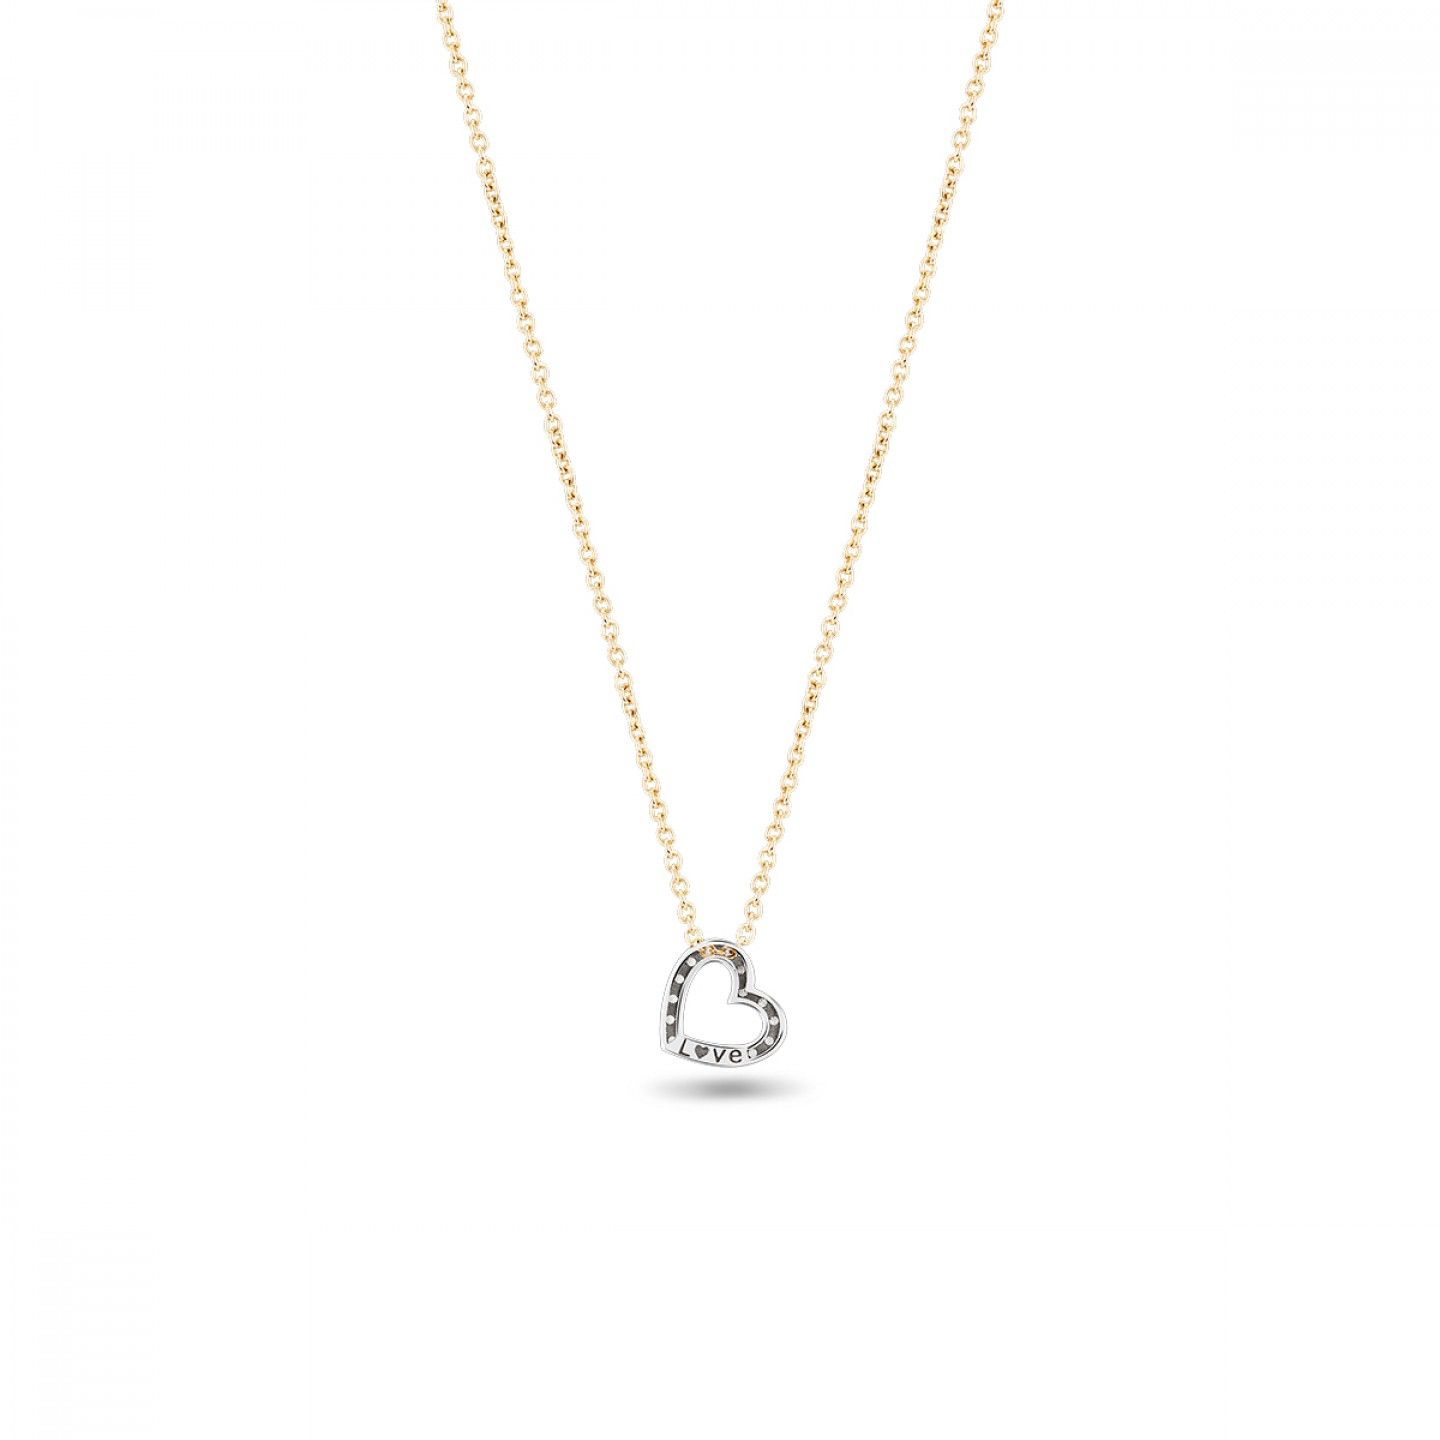 COLAR BOW GOLD ONE HEART I